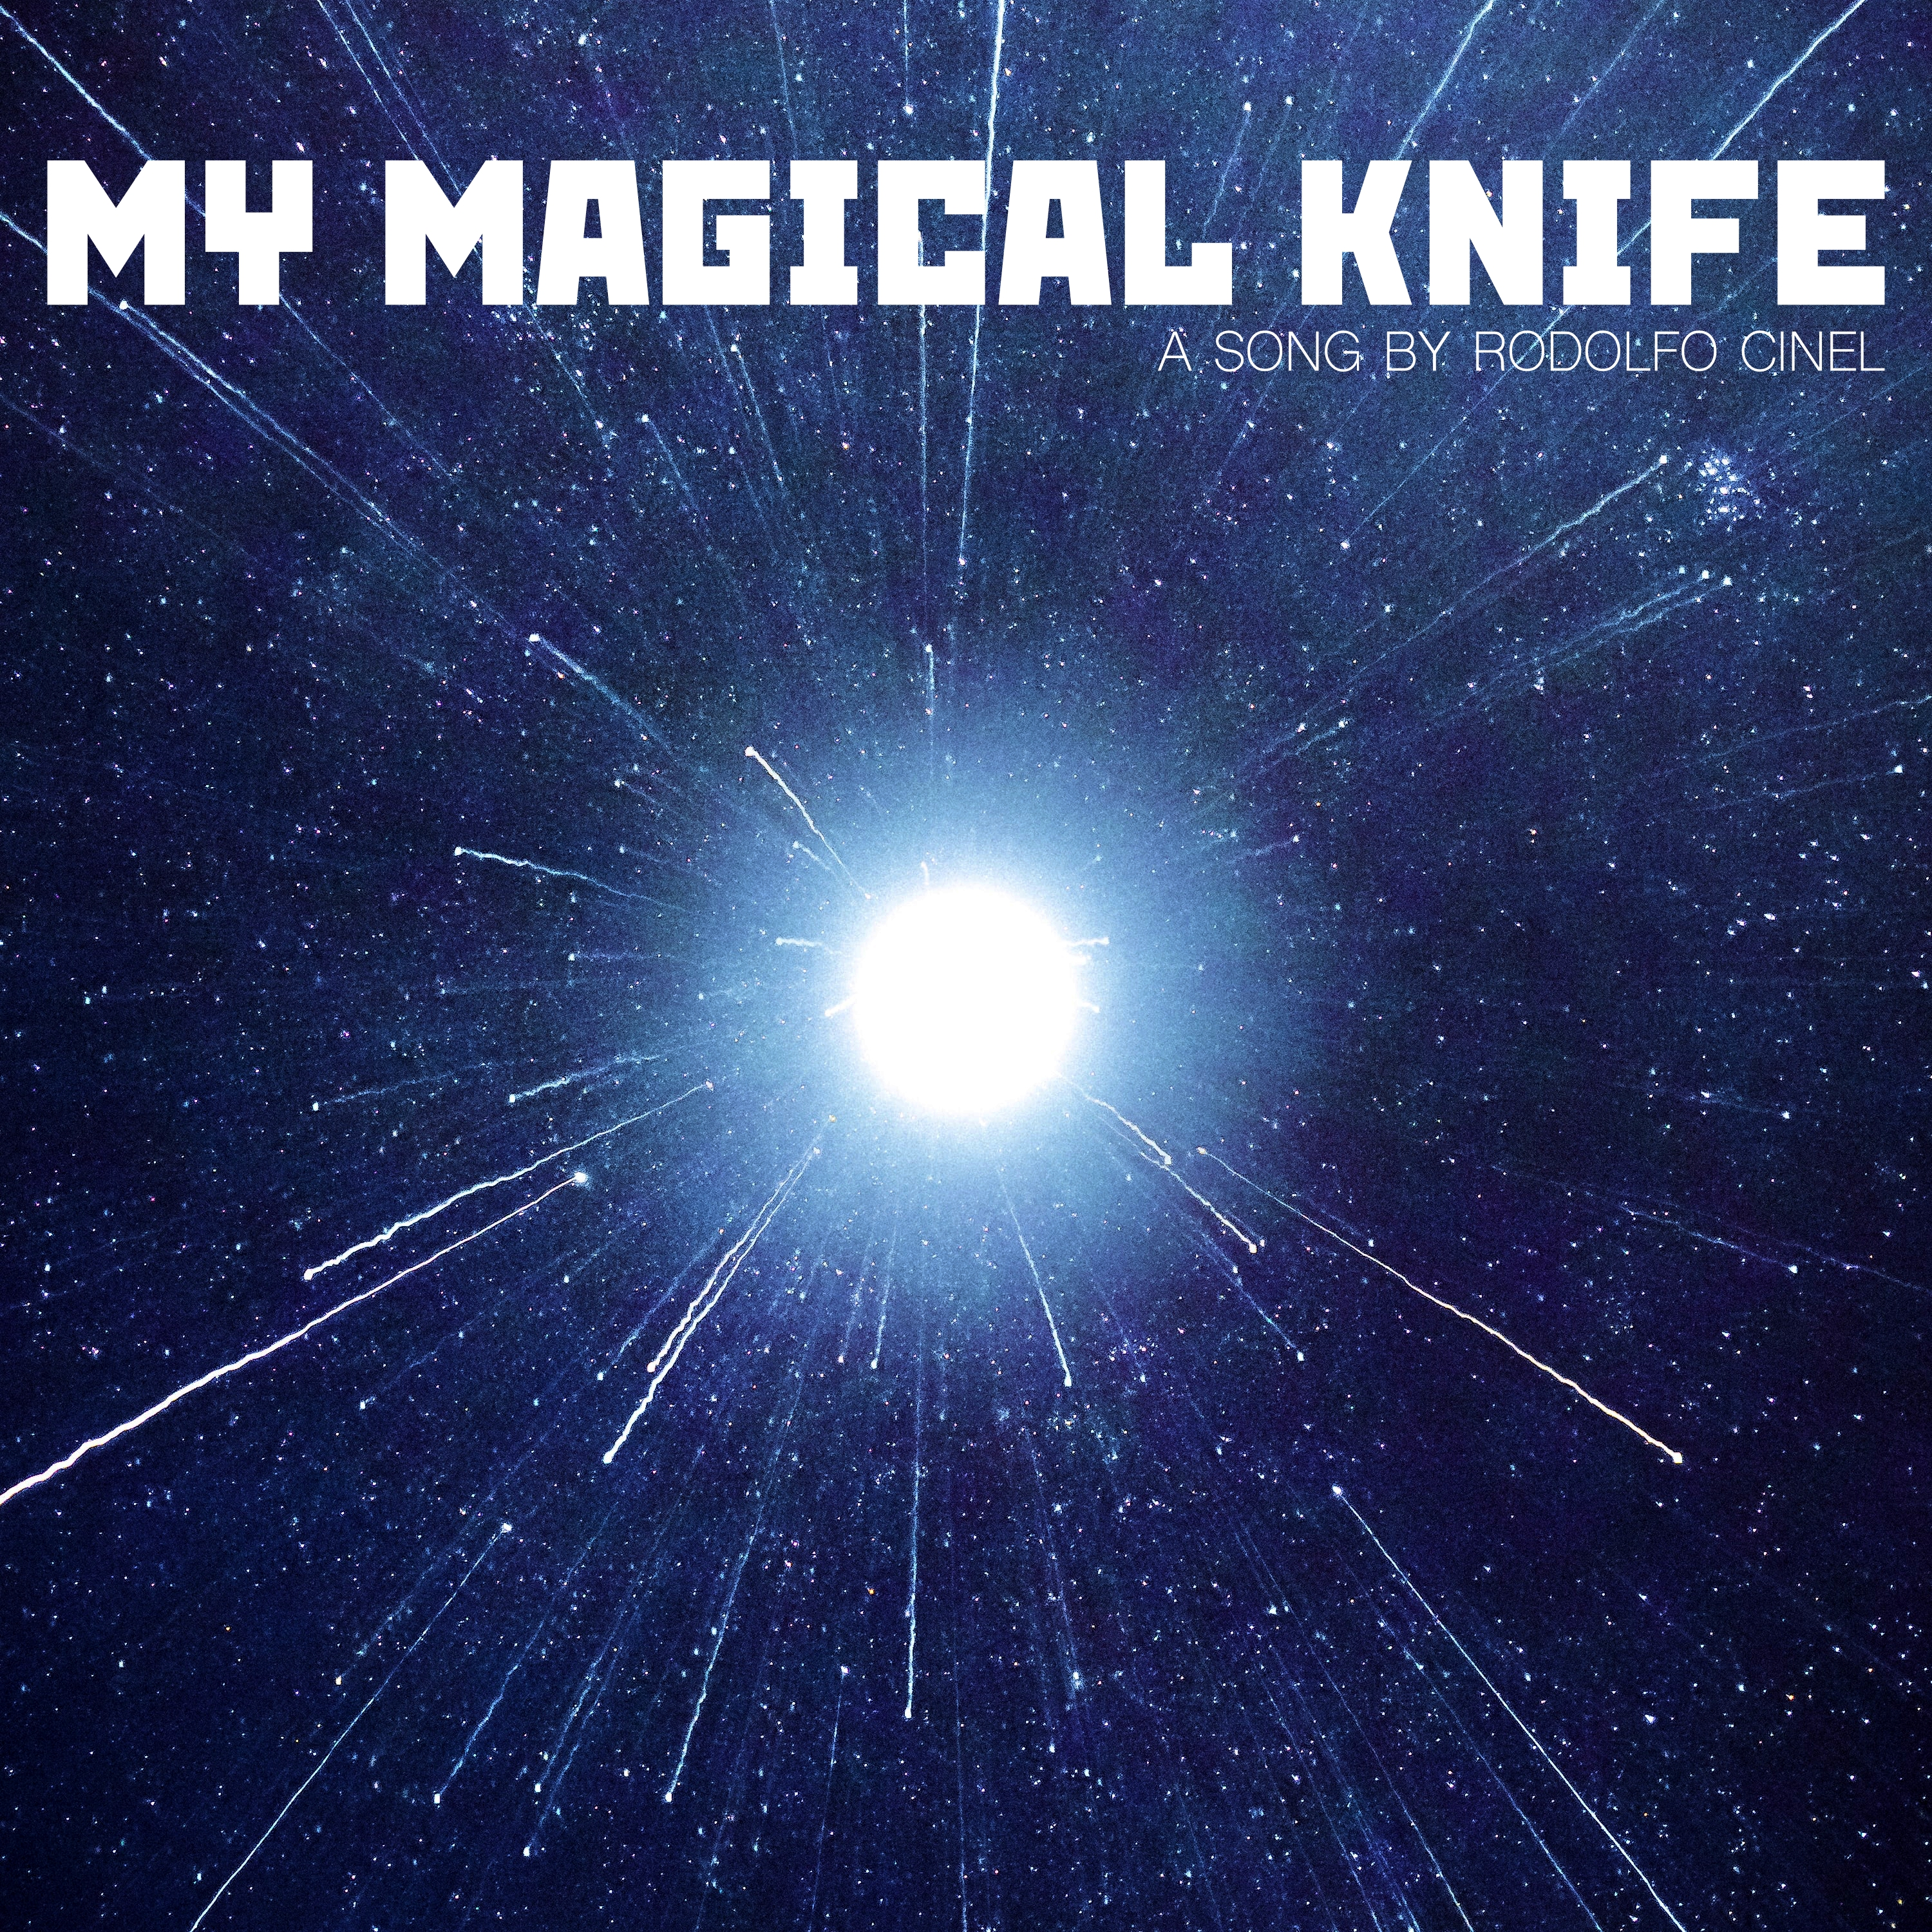 My Magical Knife